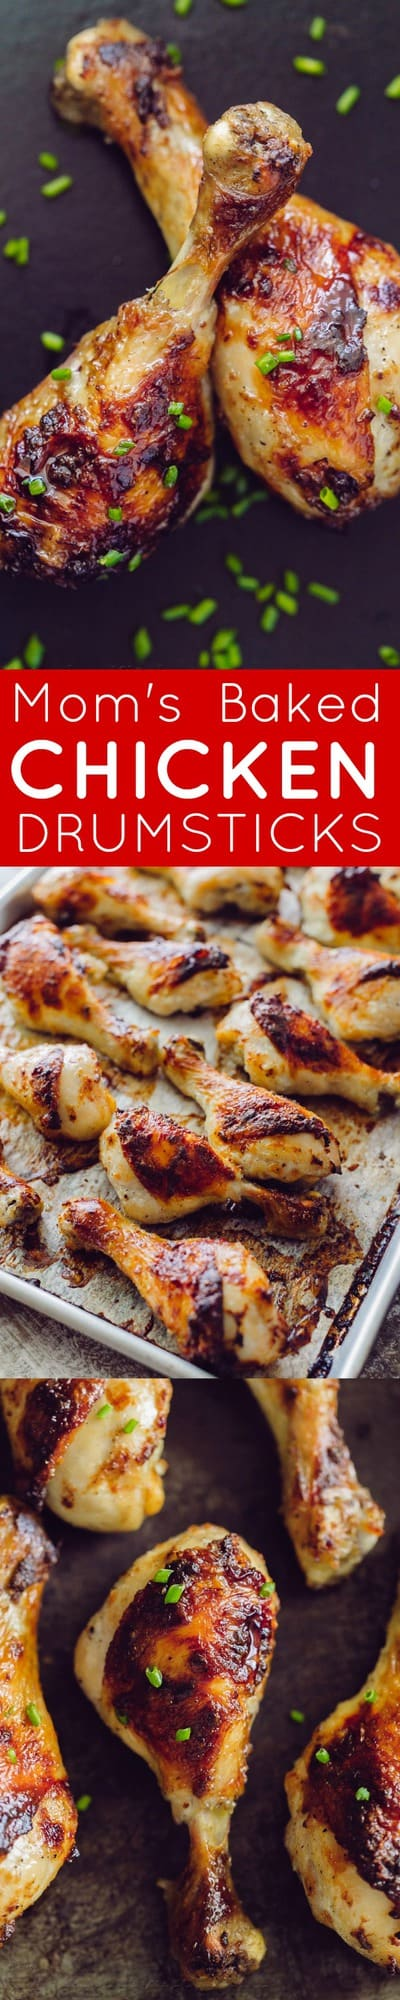 Tender, Juicy Baked Chicken Drumsticks With A Crisp, Salty Skin Marinade  Has Only